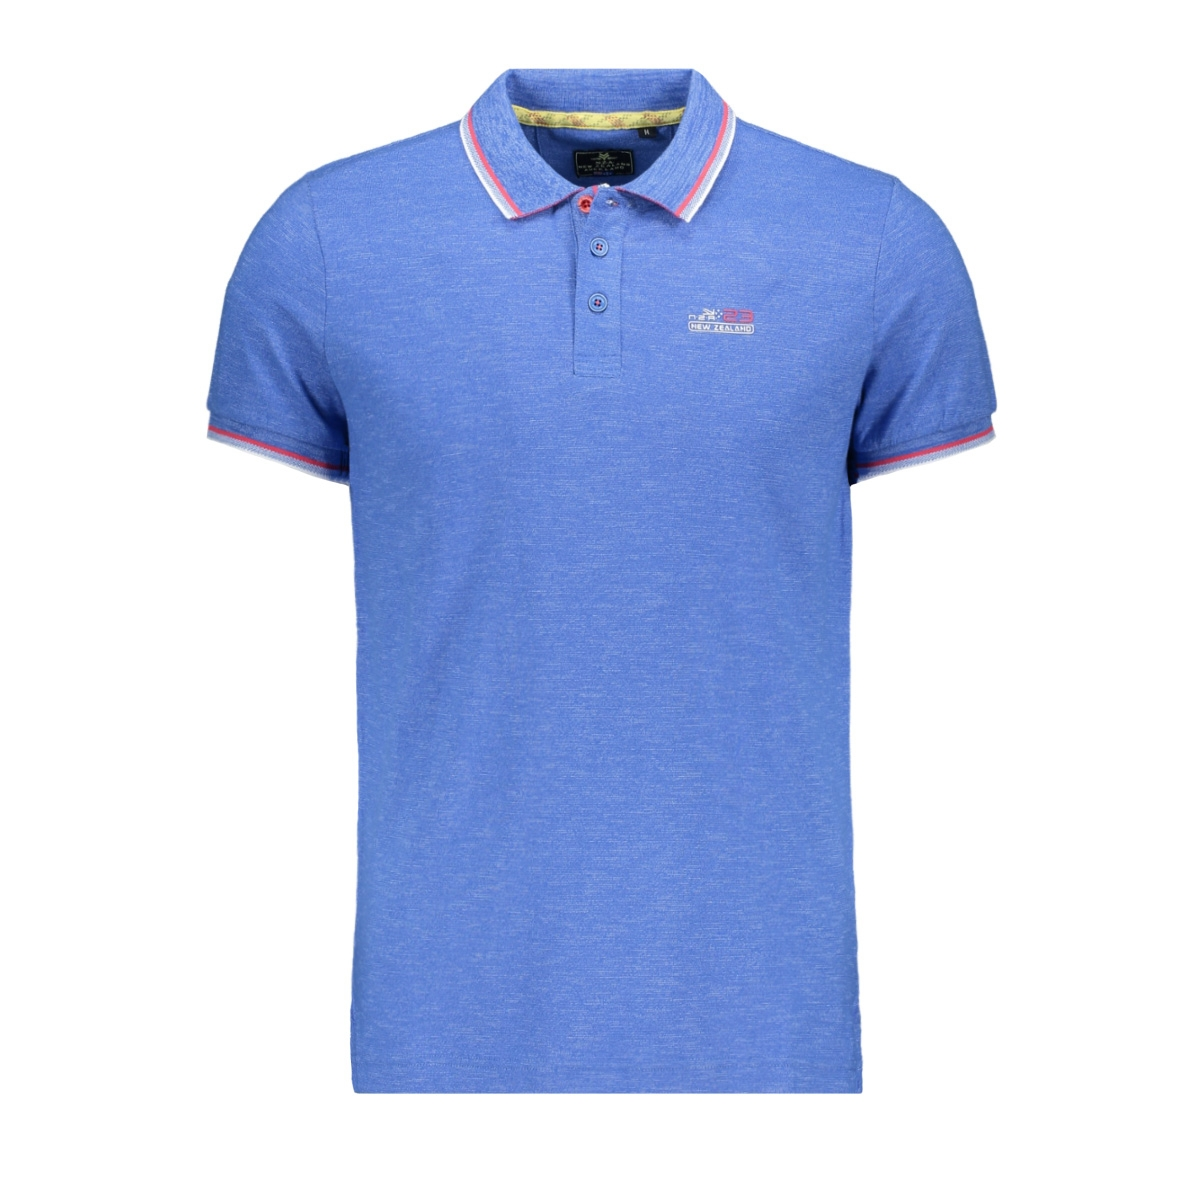 hanlon 20an110 n.z.a. polo 260 new blue